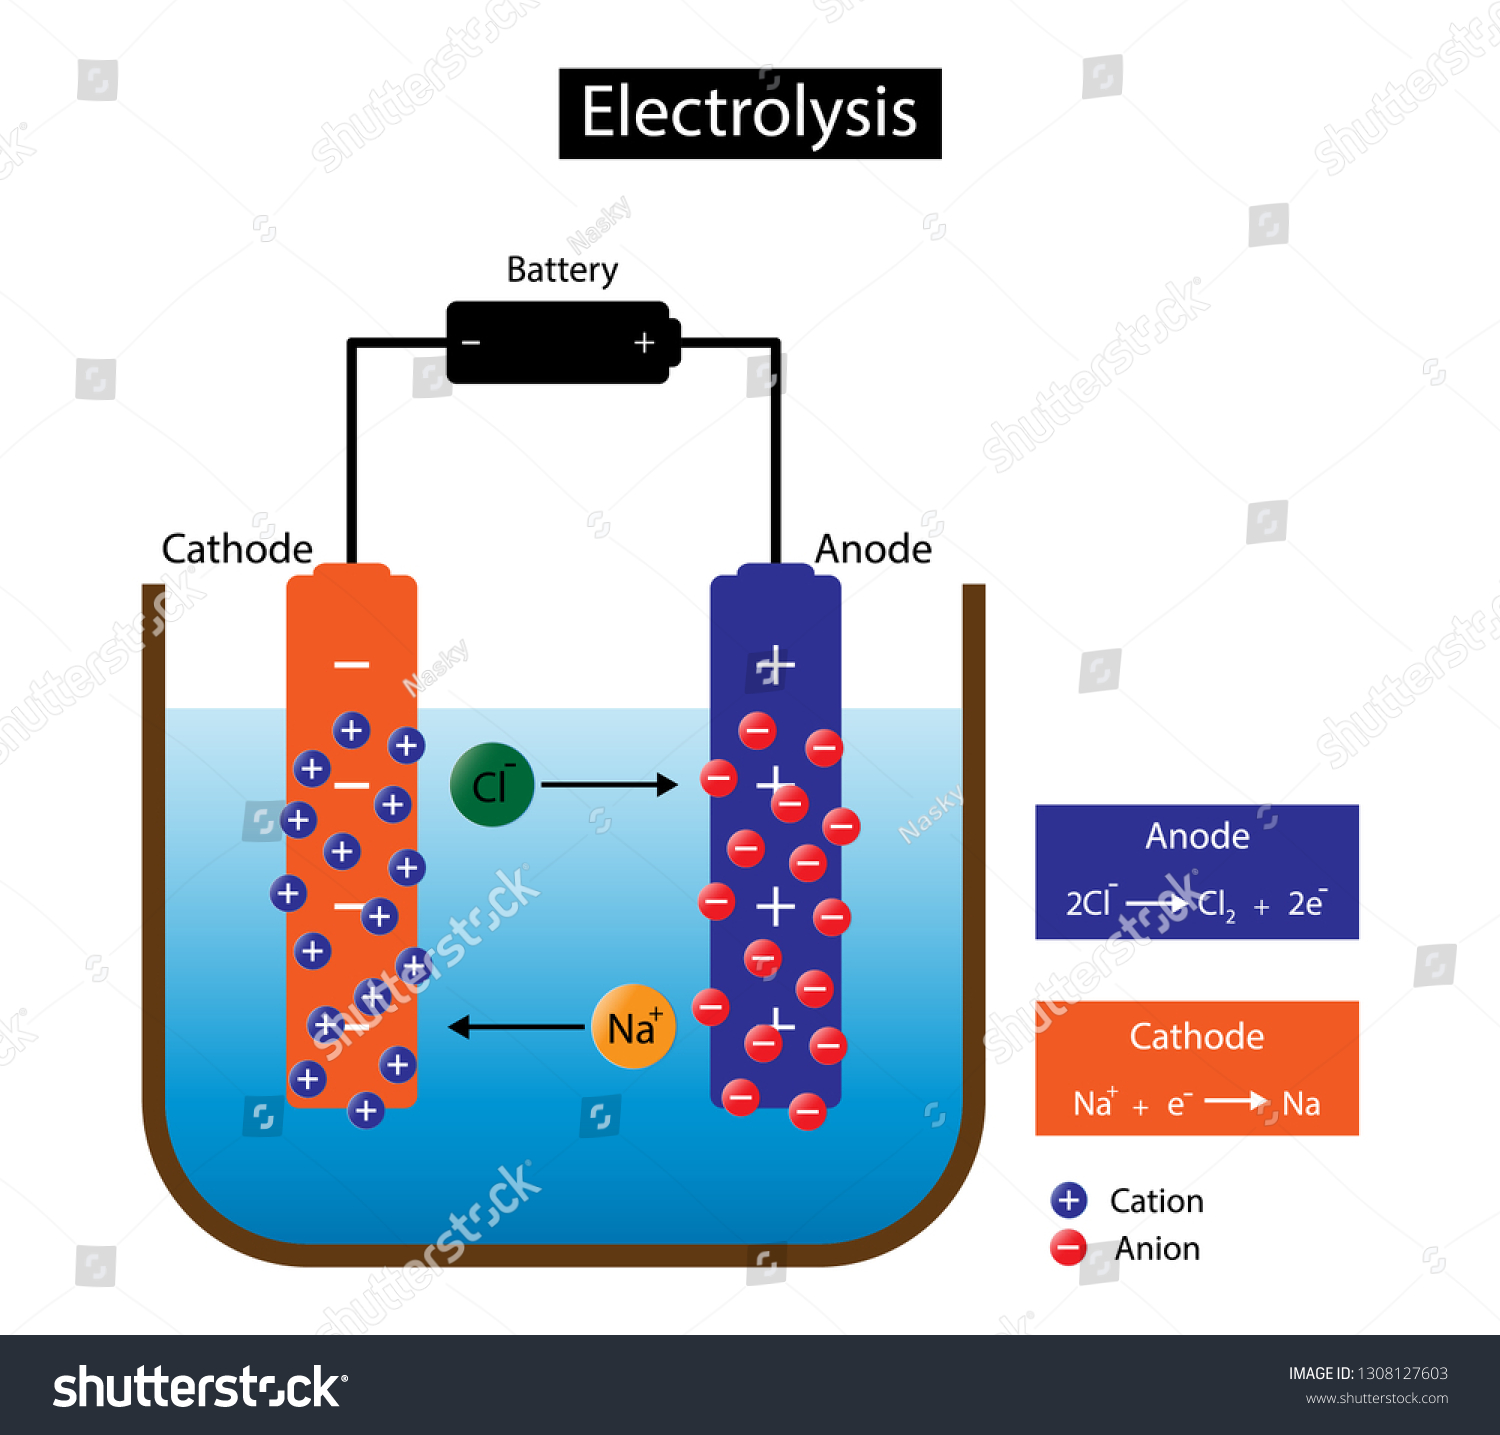 Illustration Chemistry Ionic Theory Electrolysis Chemical Stock